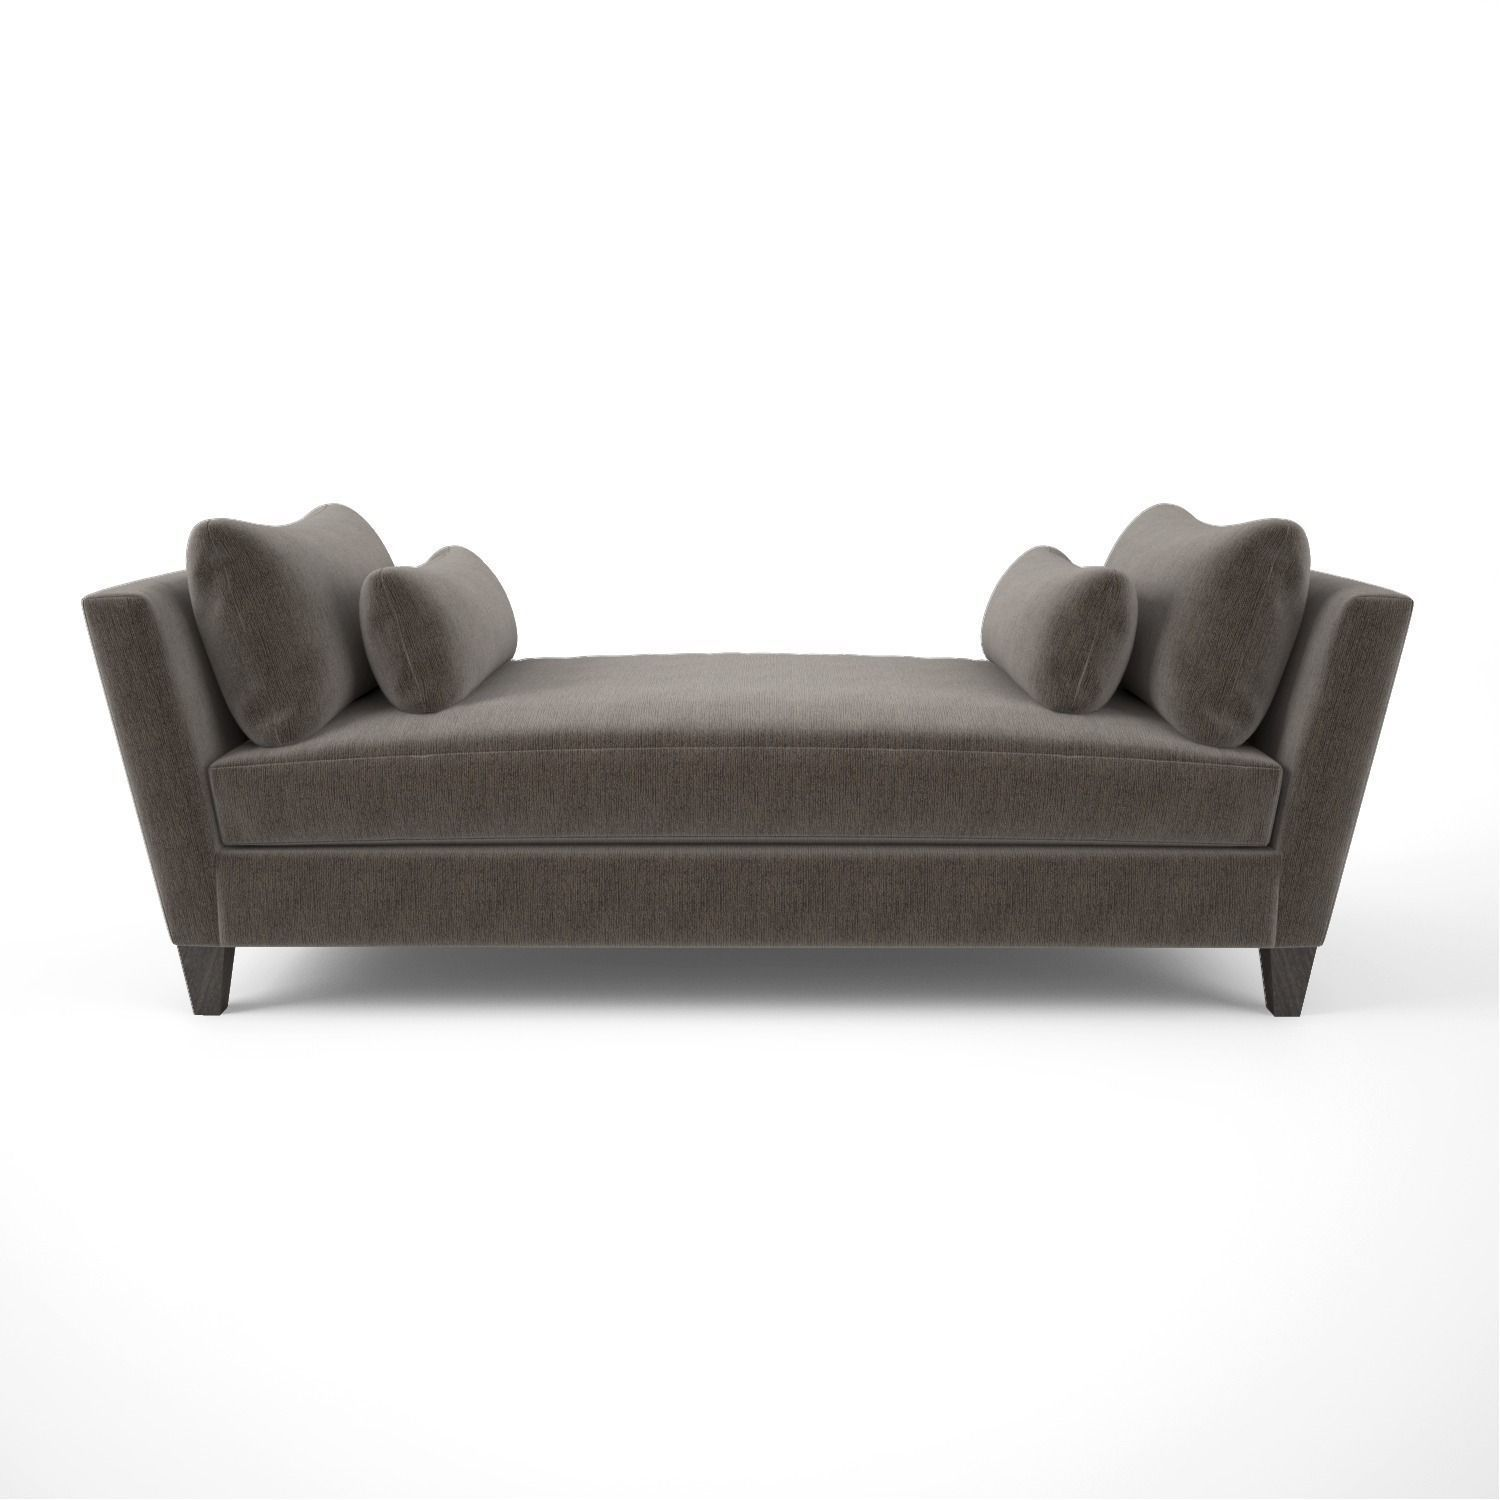 Crate And Barrel Marlowe Daybed Sofa 3d Model Max Obj 3ds Fbx